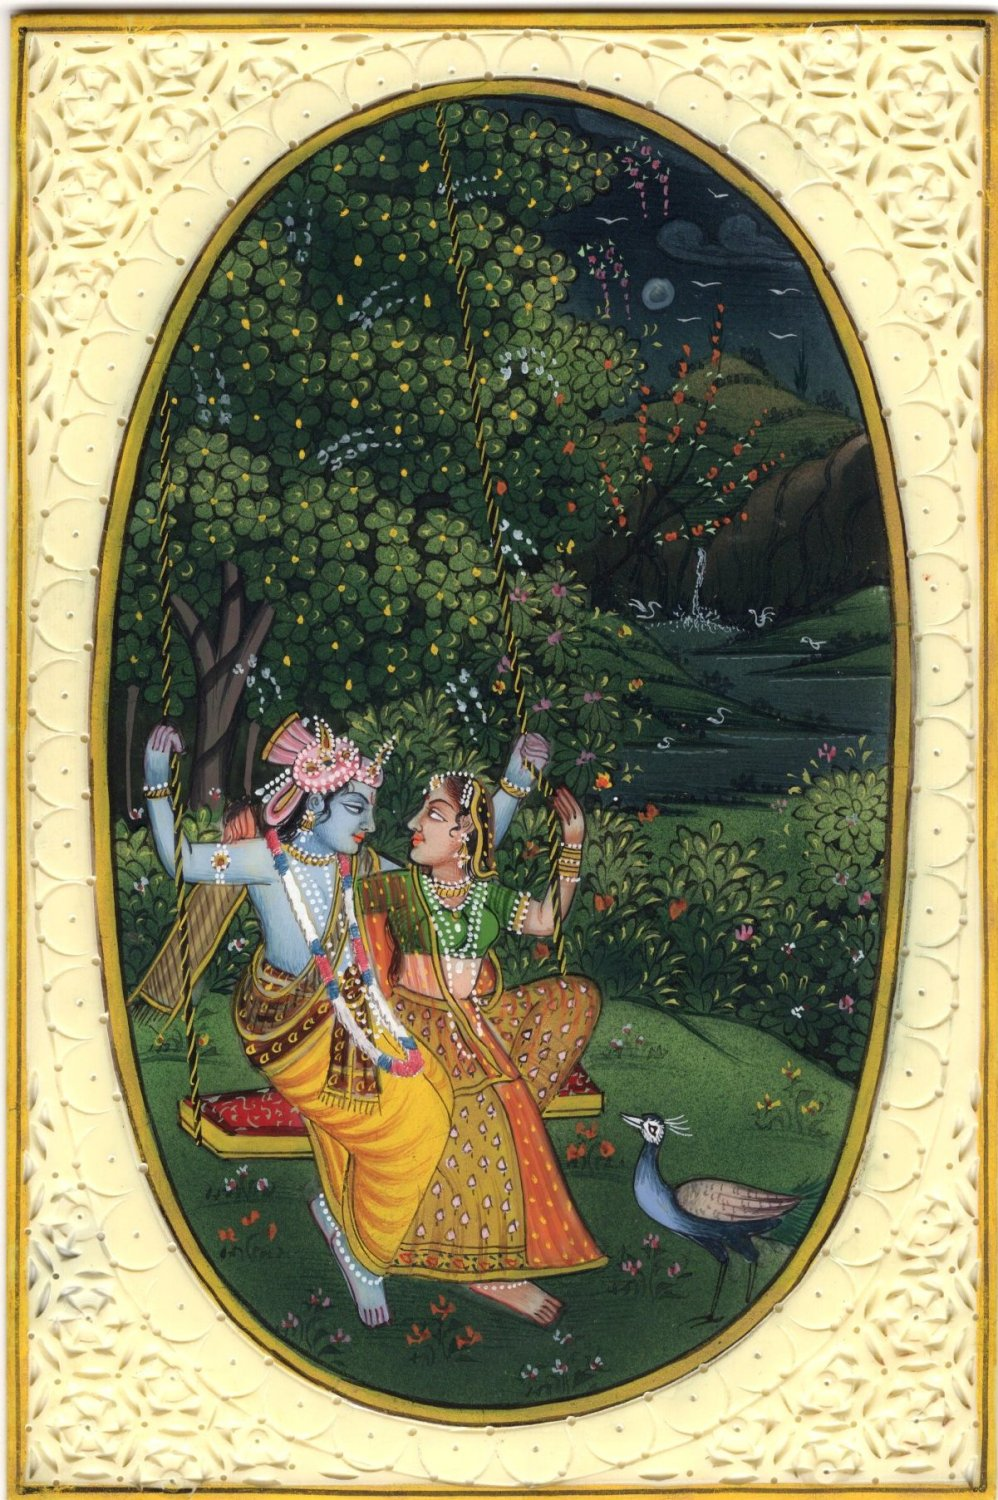 Indian Krishna Radha Decor Art Handmade Hindu Ethnic Miniature Folk Painting